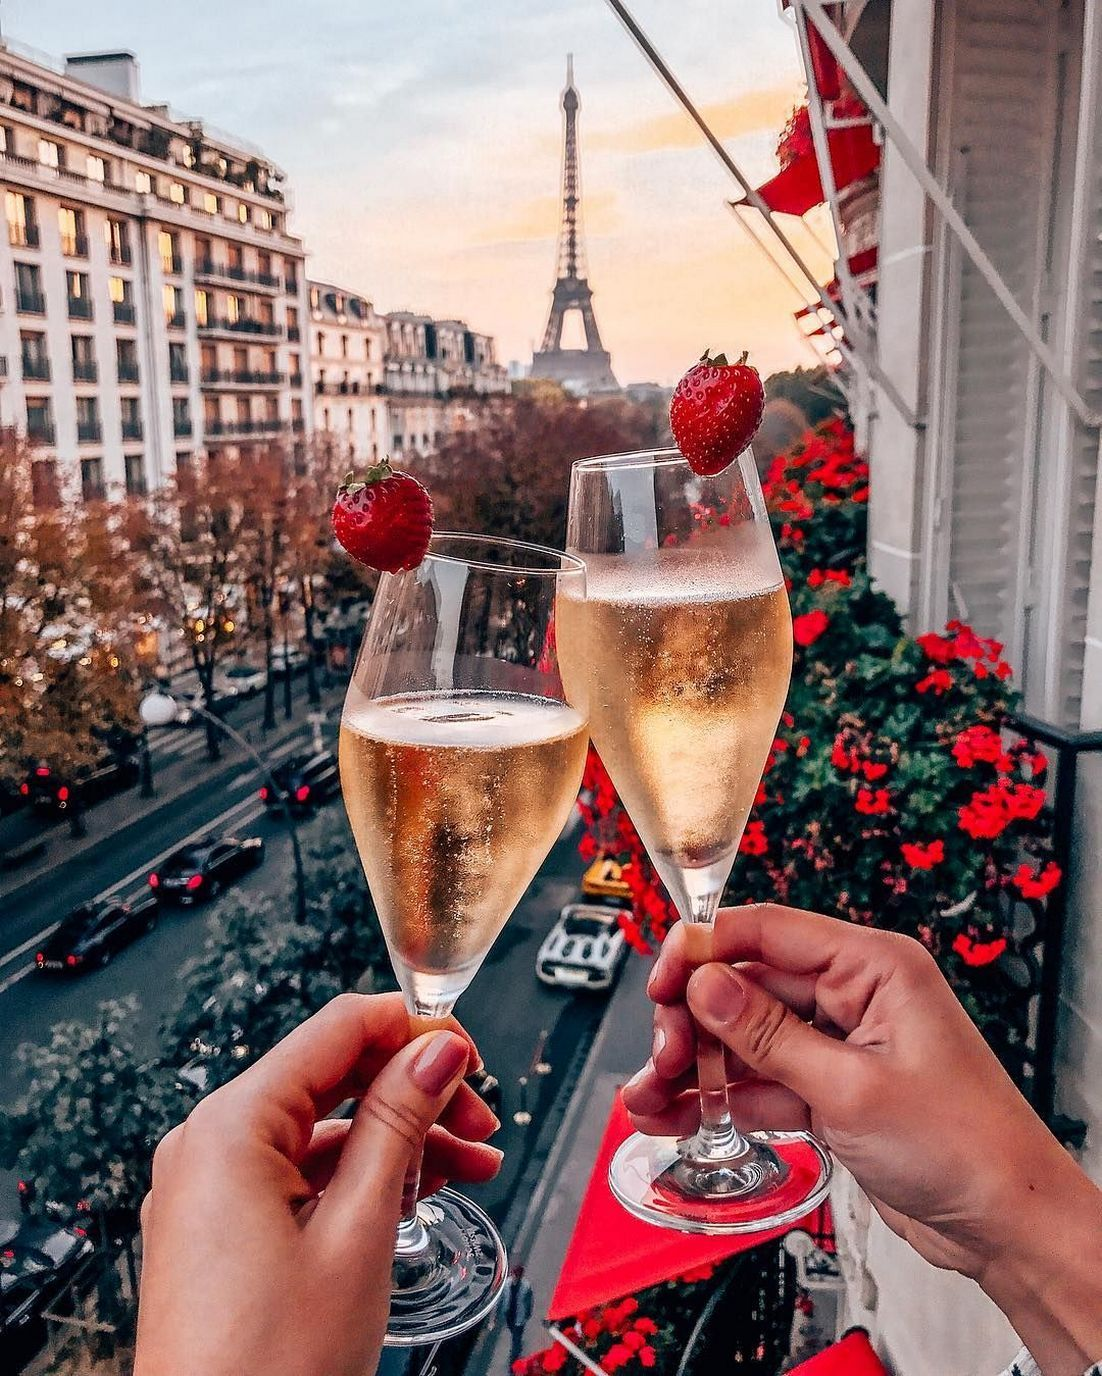 The Pictures Do Not Necessarily Have To Be Very Professional Our Wedding Pictures Will Provide You With Some Clarity Contemplatin Paris Travel Paris Pictures